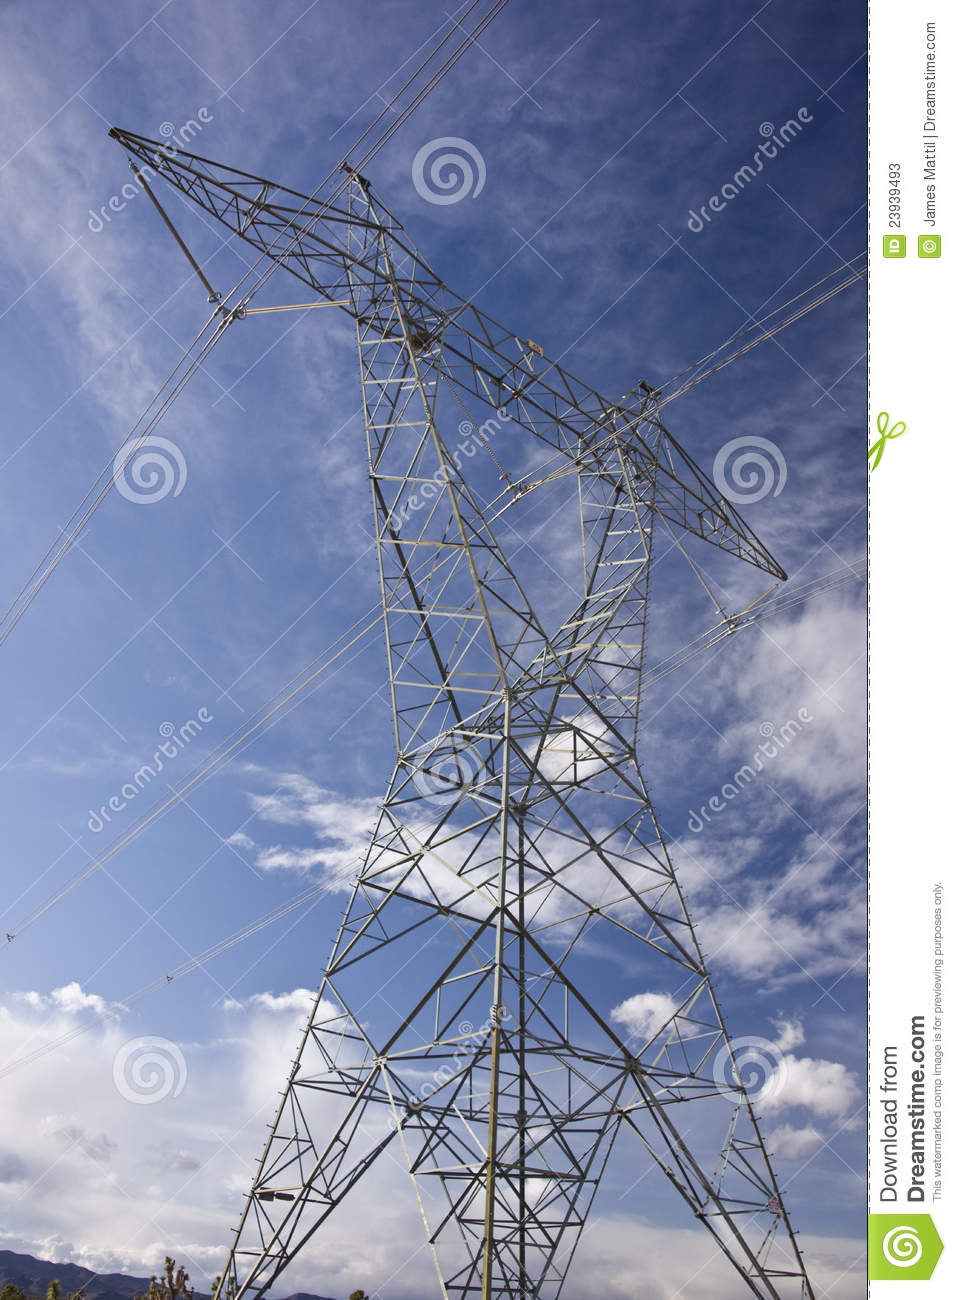 Electrical Power Tower Stock Photos